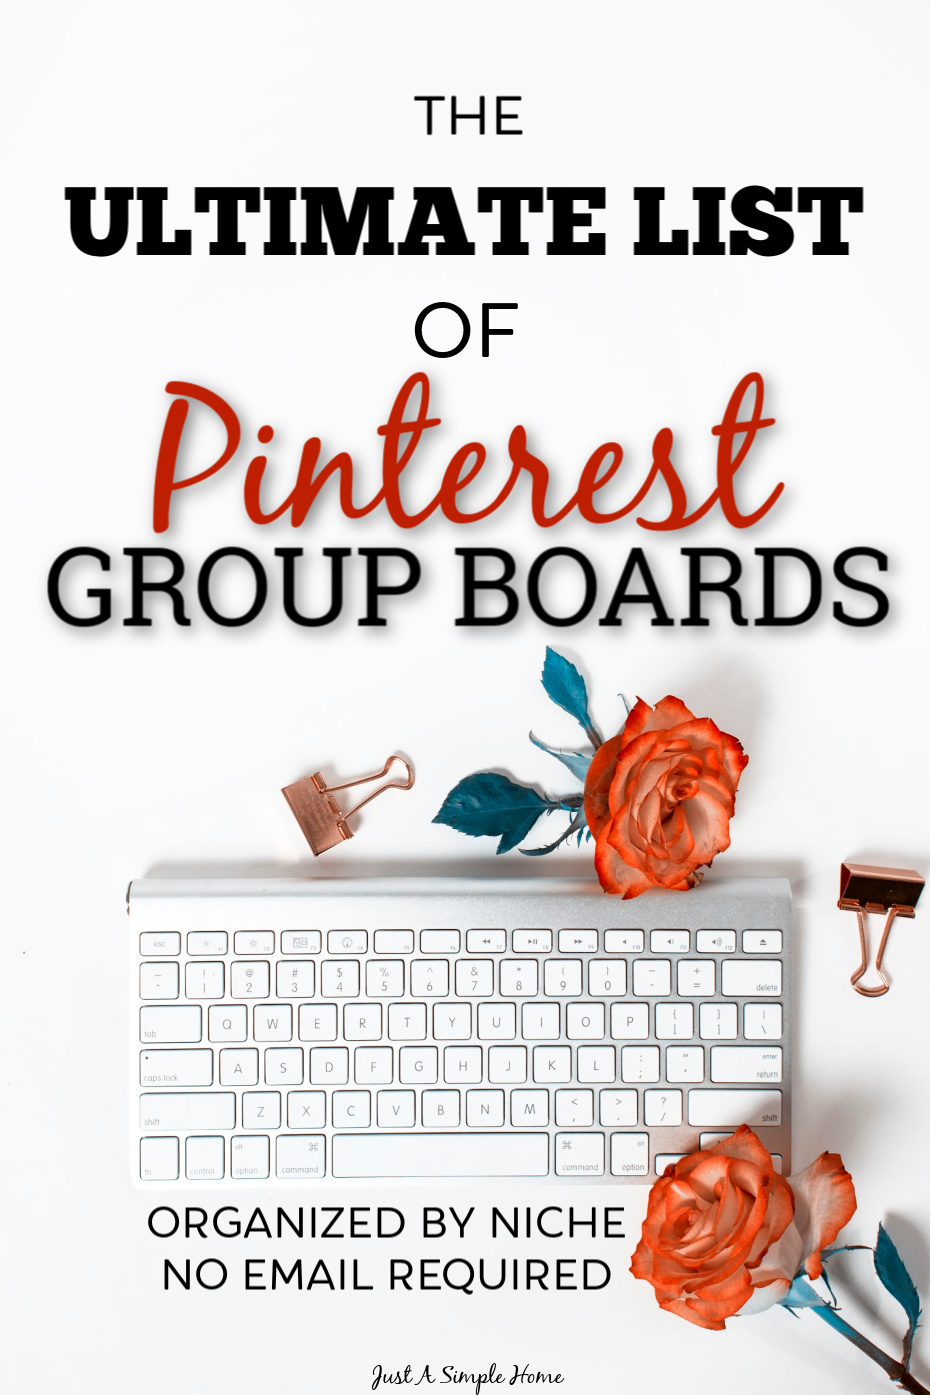 The Ultimate List of Pinterest Group Boards - organized by niche, totally free. Grow your blog traffic by joining some of the best group boards for bloggers. You'll find almost every niche on the list! #blogging #bloggingtips #pinteresttips #groupboards #socialmedia #traffictips